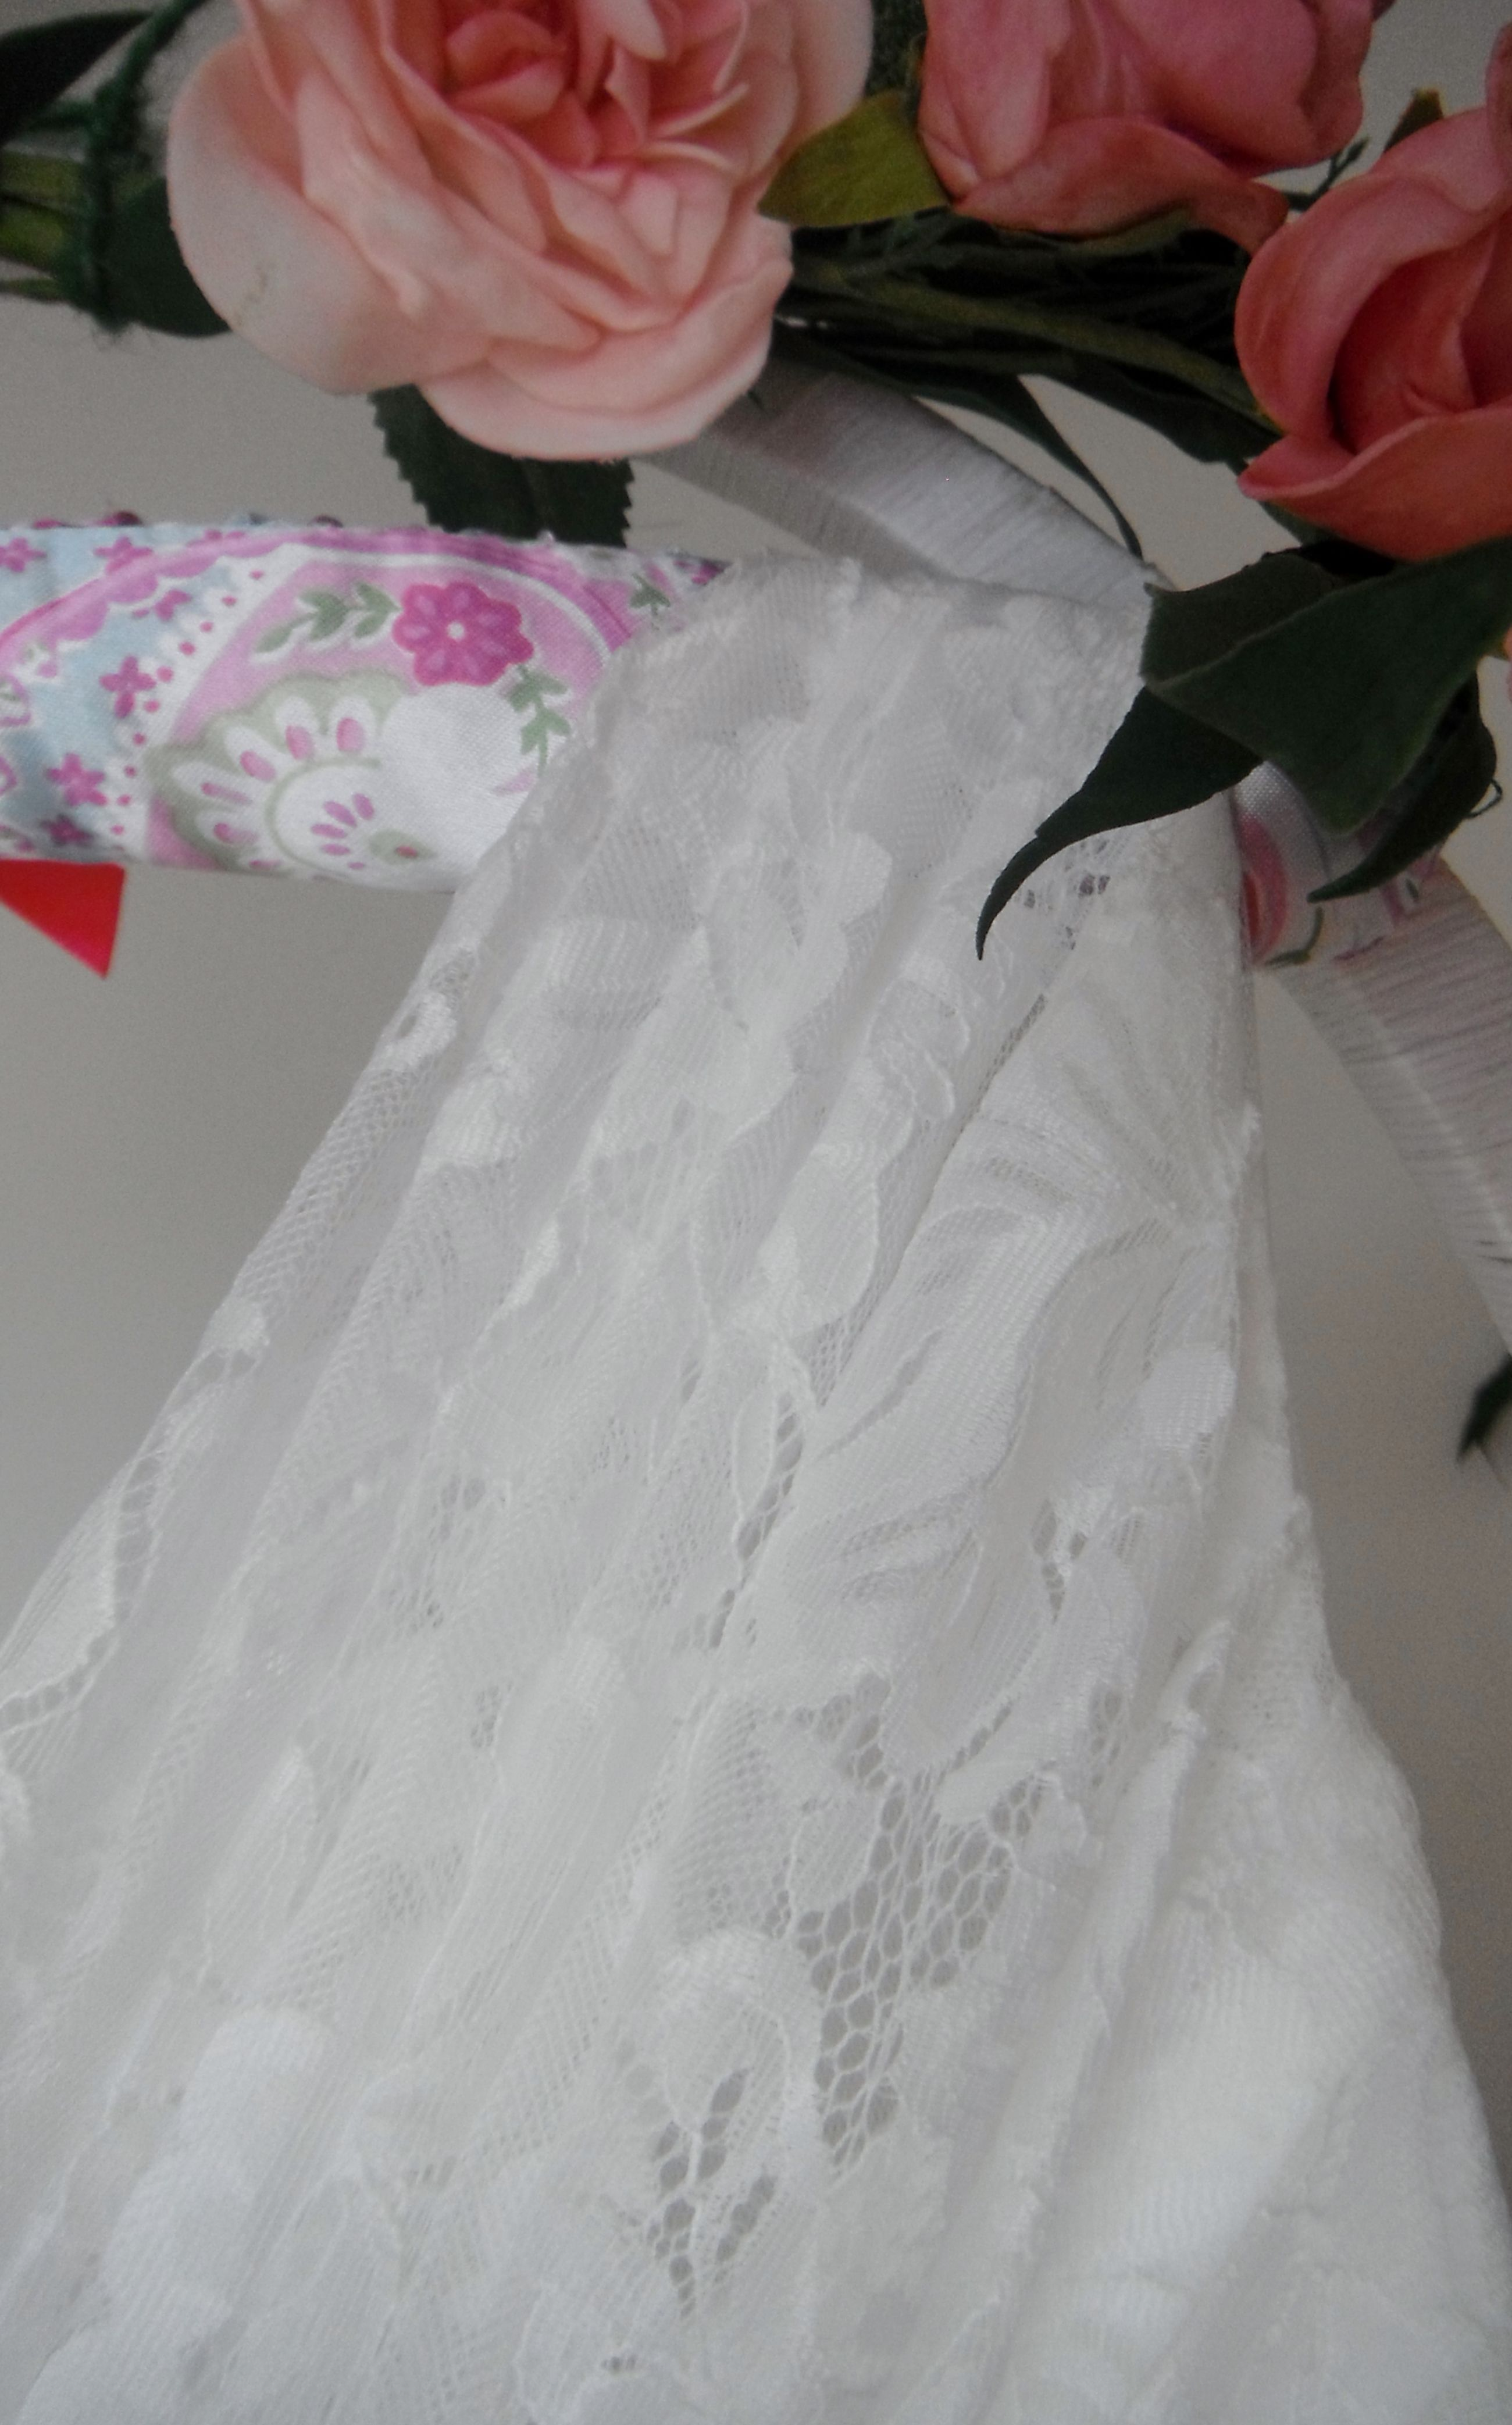 A Beautiful 50s Vintage Style Wedding Dress There Is Extensive Pleating To The Lace Overlay